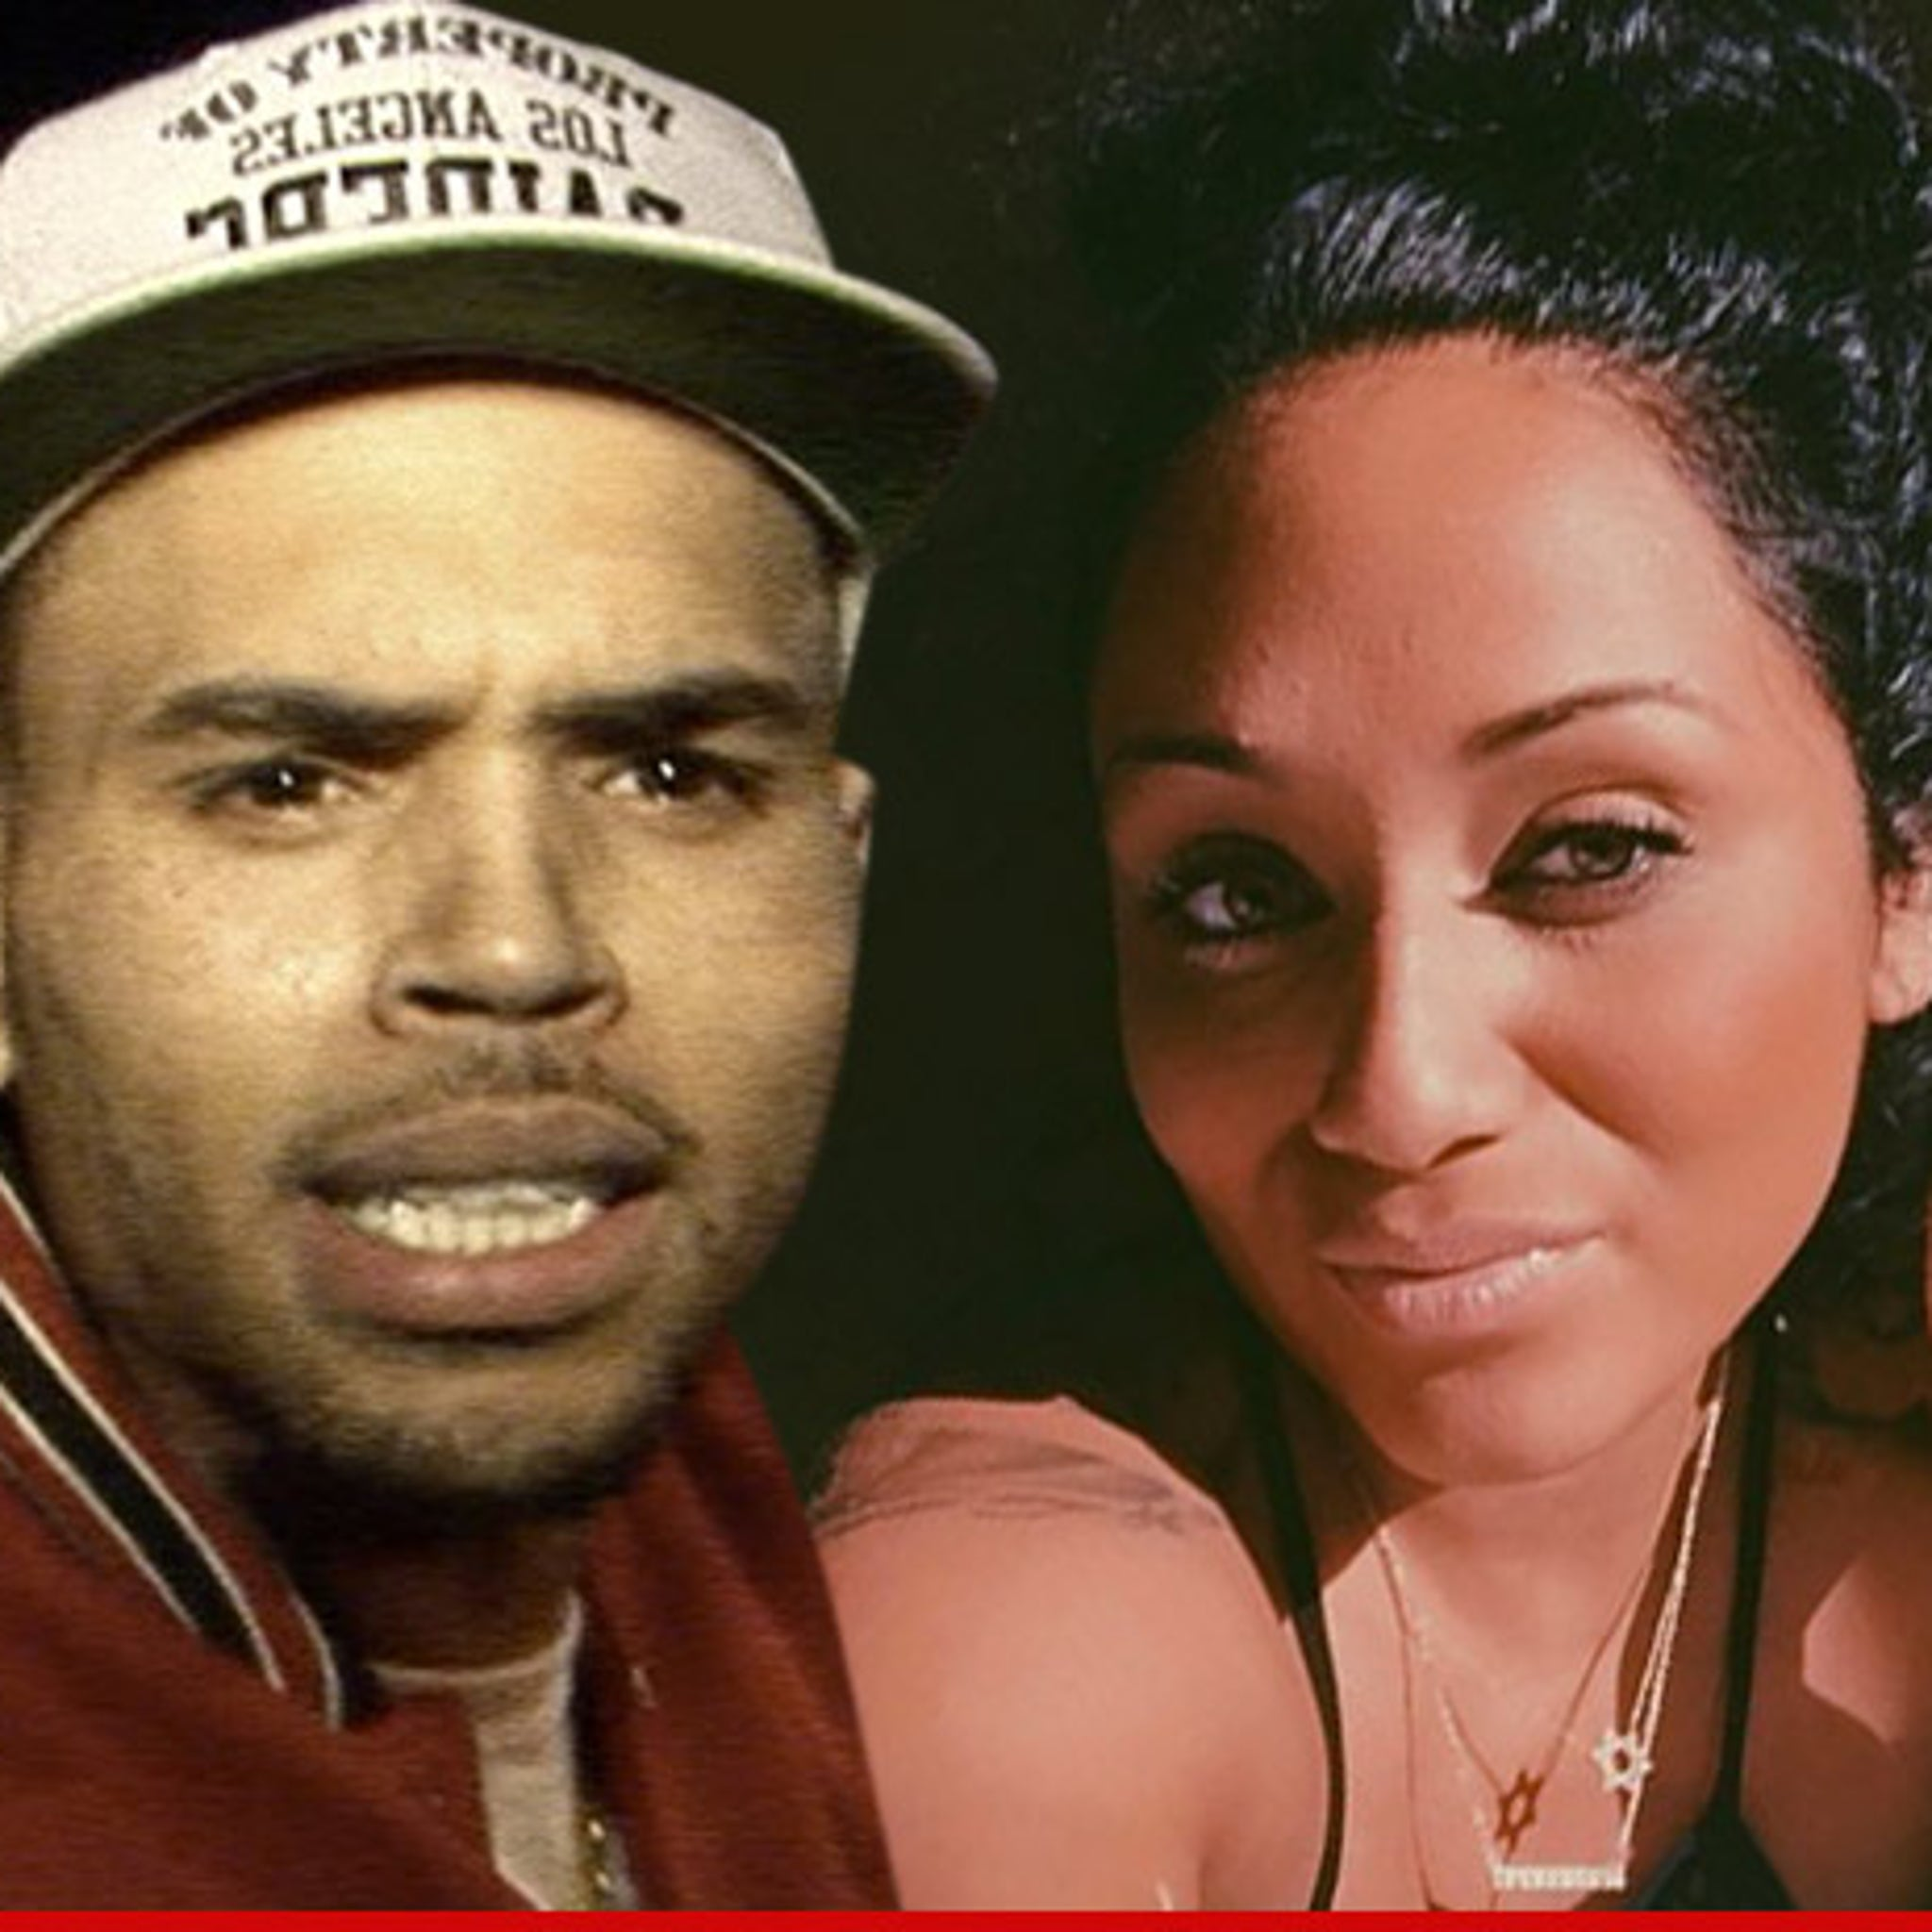 Chris Brown -- My Daughter Gets My Last Name, and I Get Her